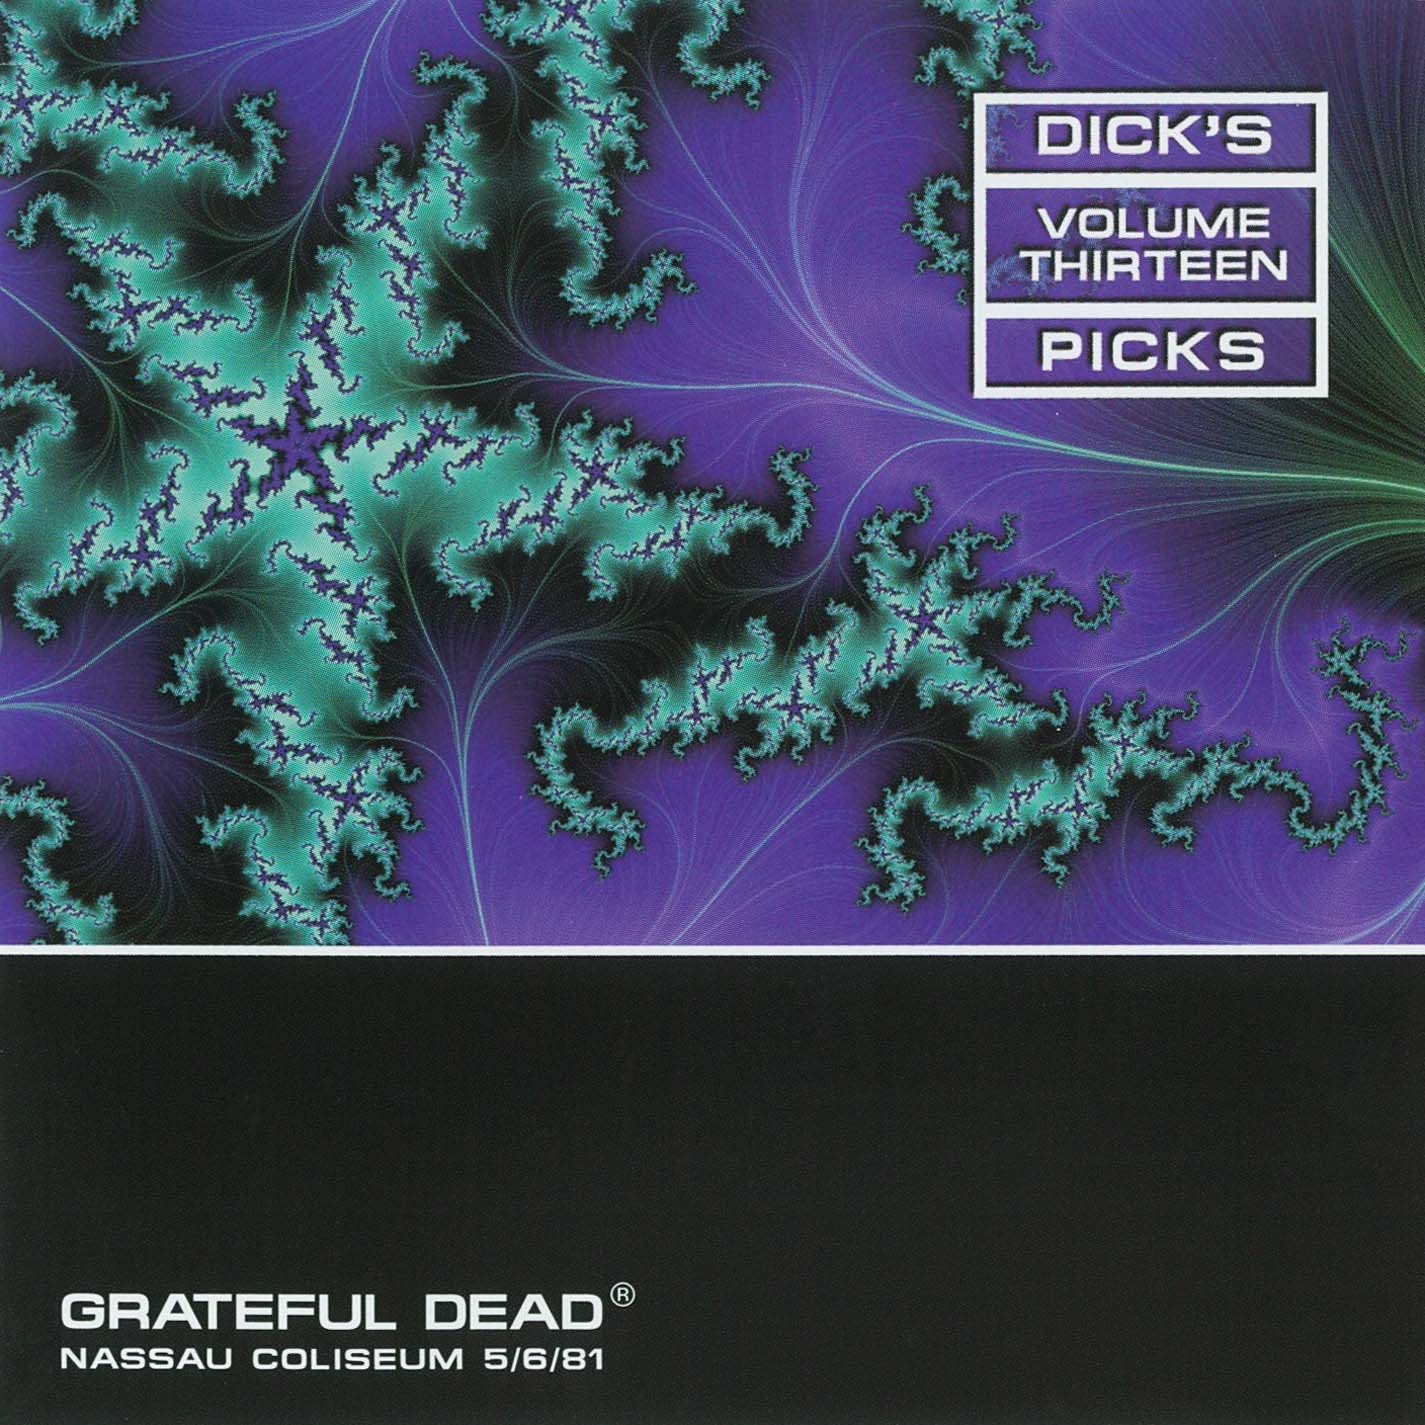 Grateful Dead Dick's Picks 13 album cover artwork